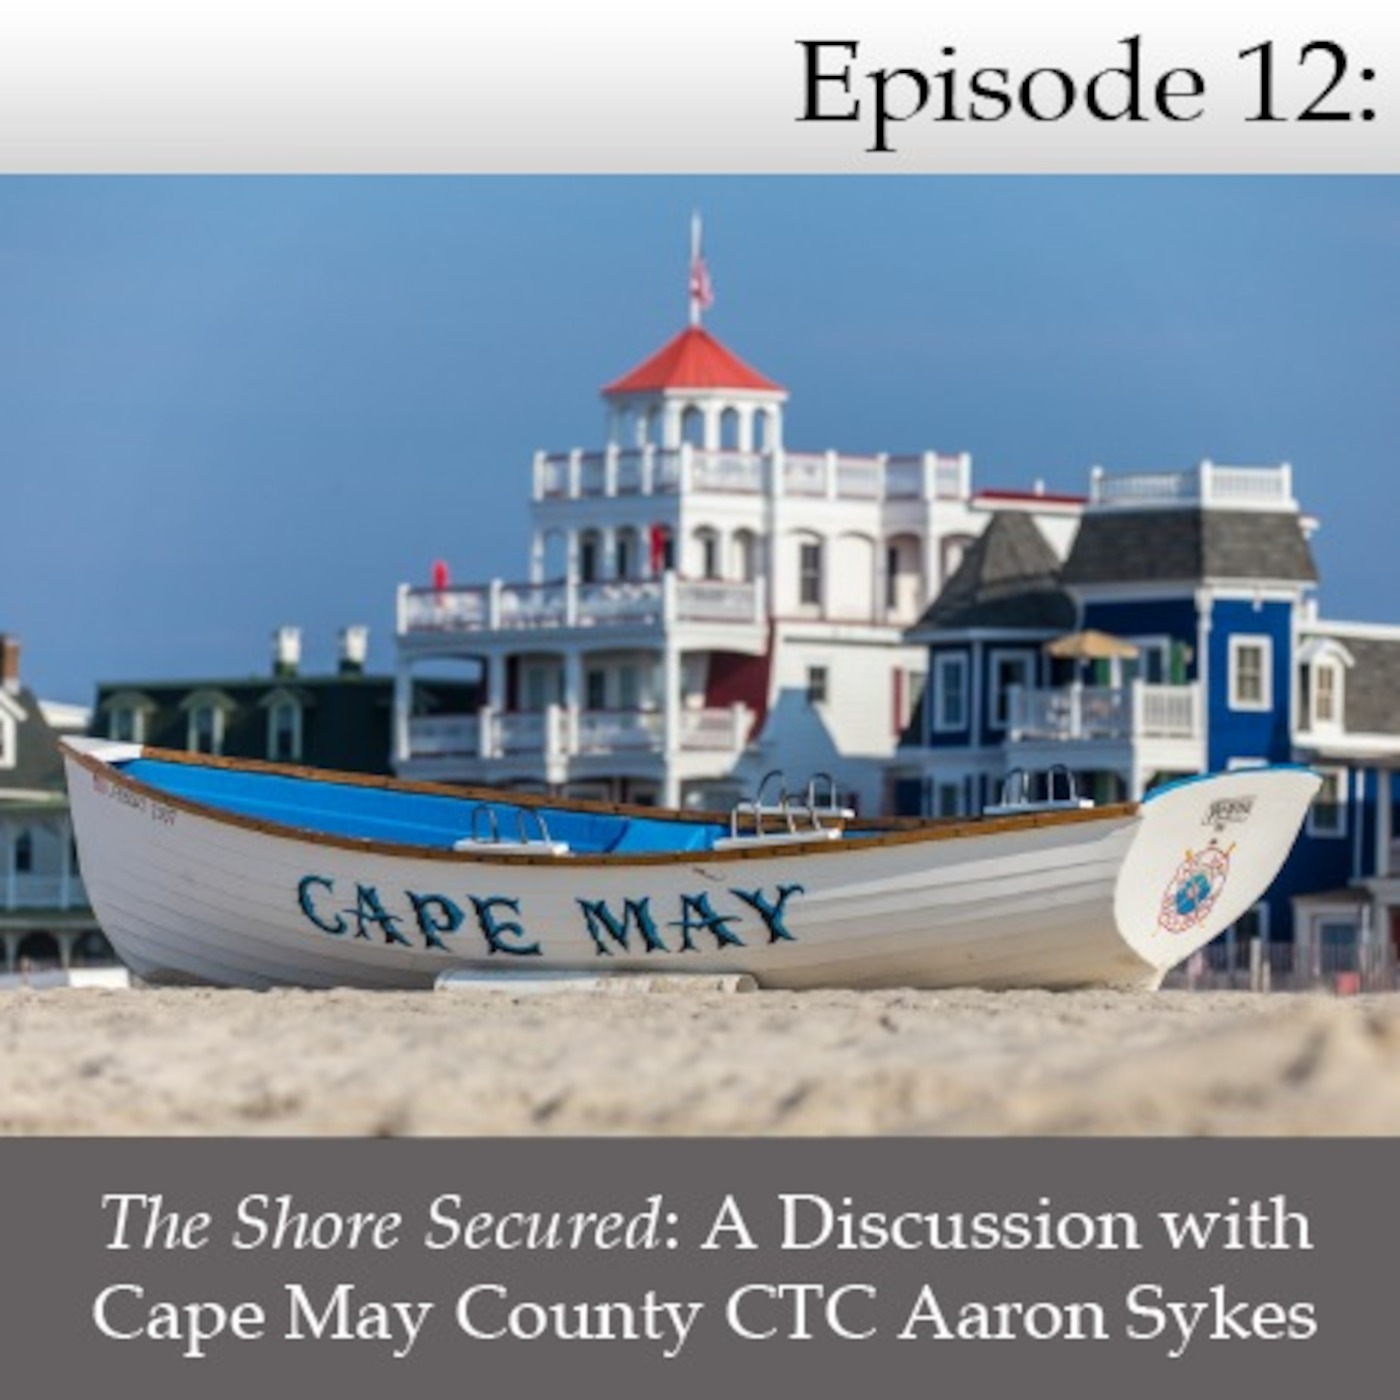 The Shore Secured - A Discussion With Cape May County CTC